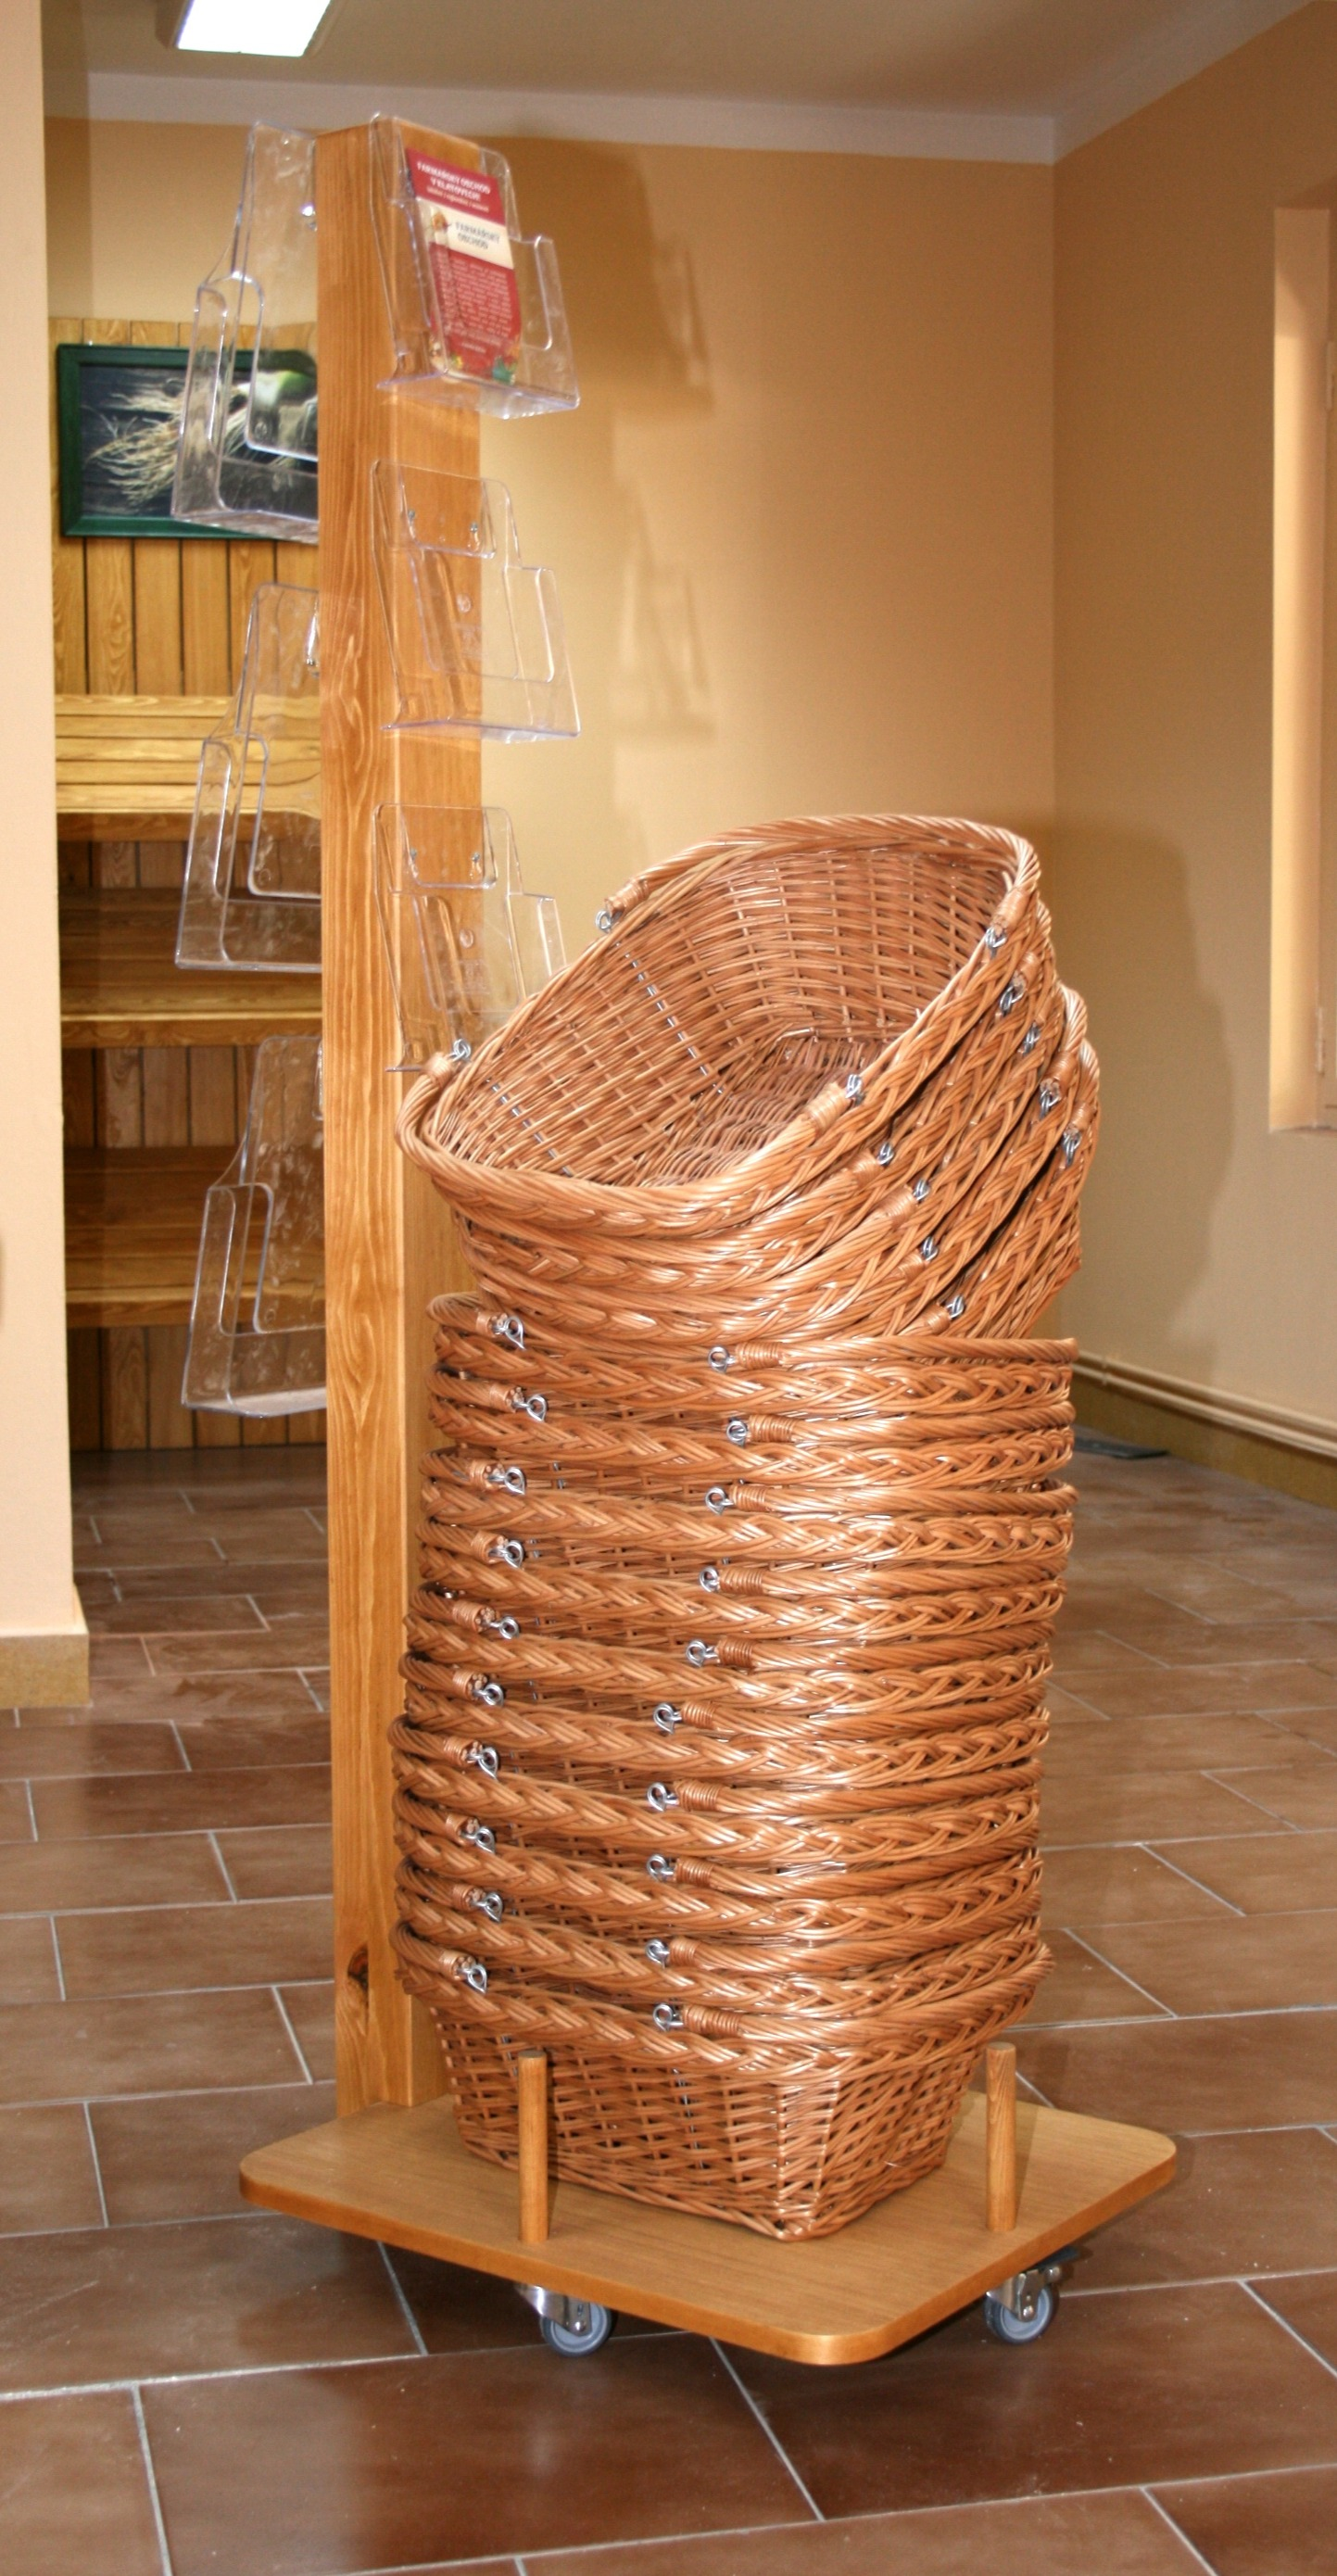 Stand with baskets